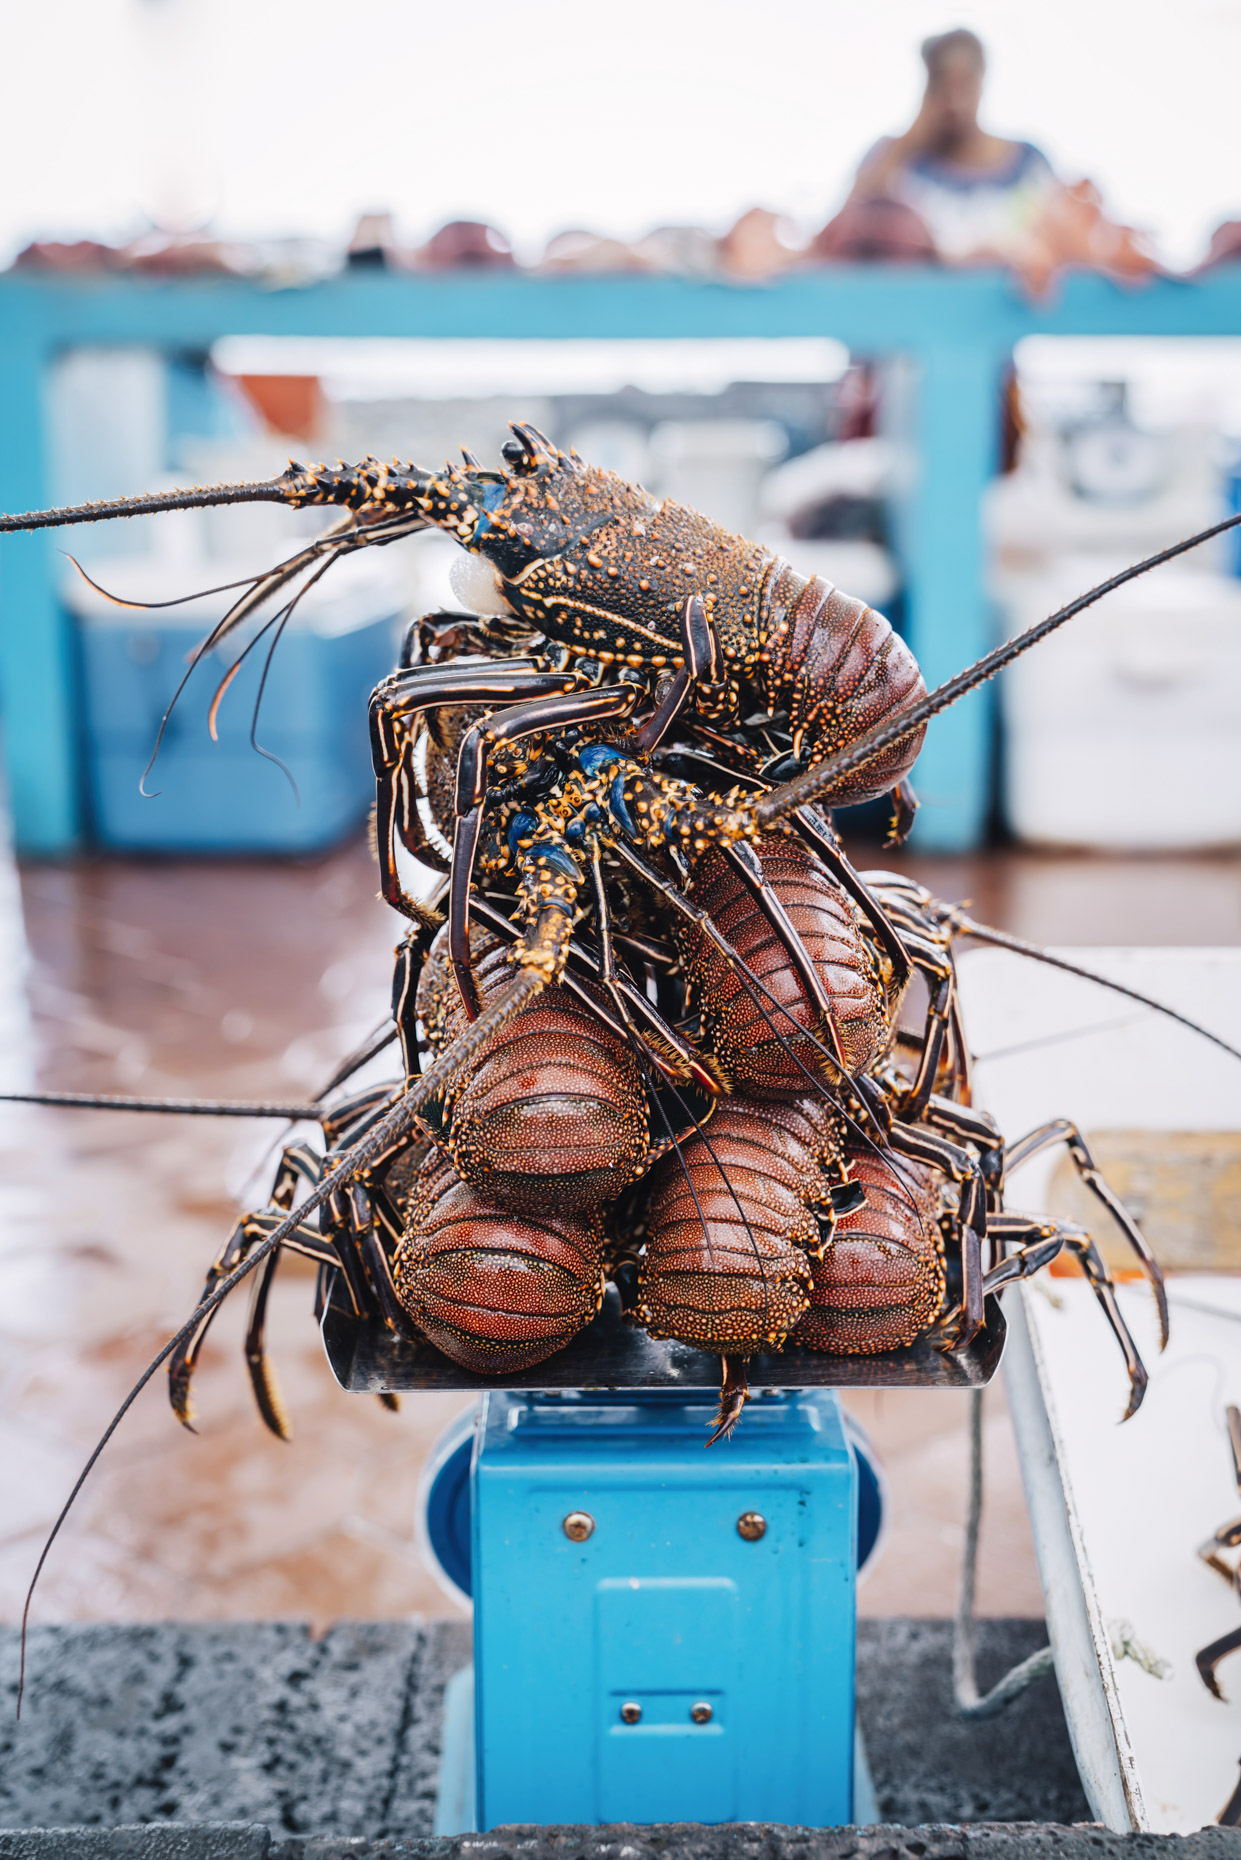 Fresh caught lobster on scale in outdoor market in Galapagos, Ecuador